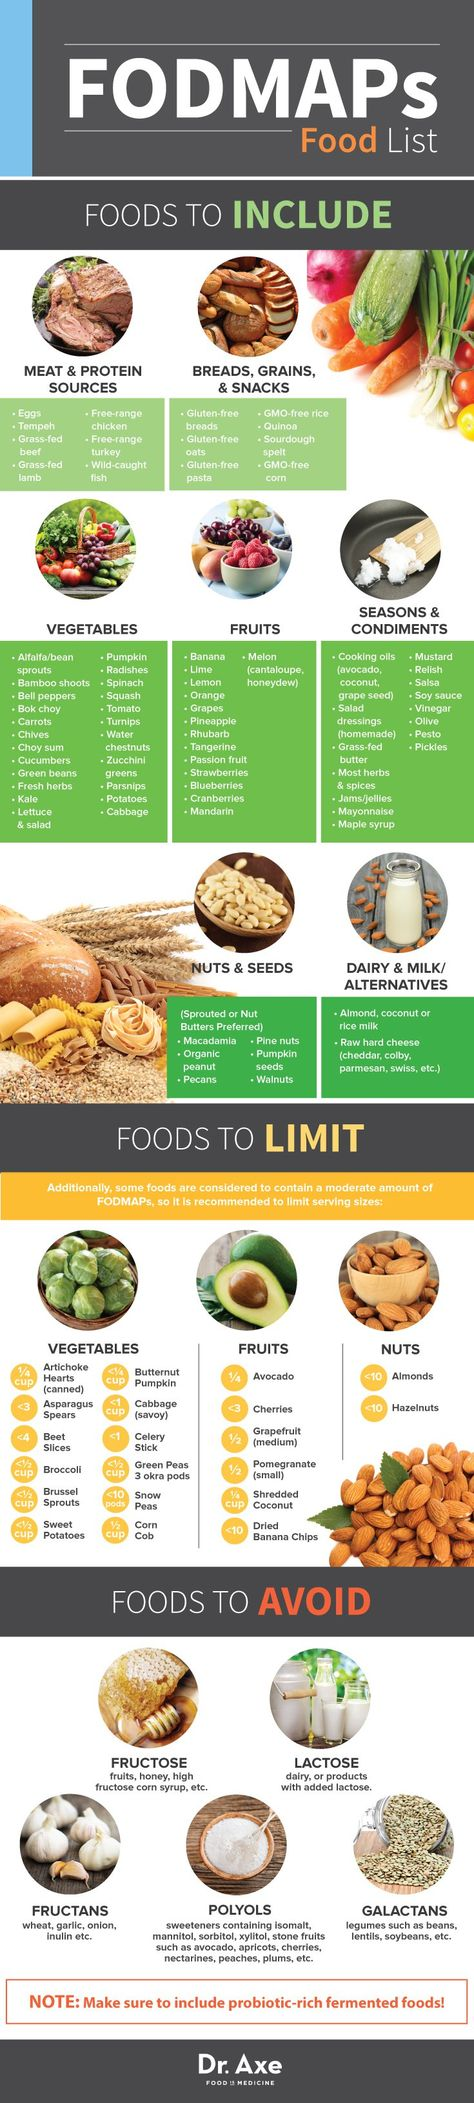 Foods to include